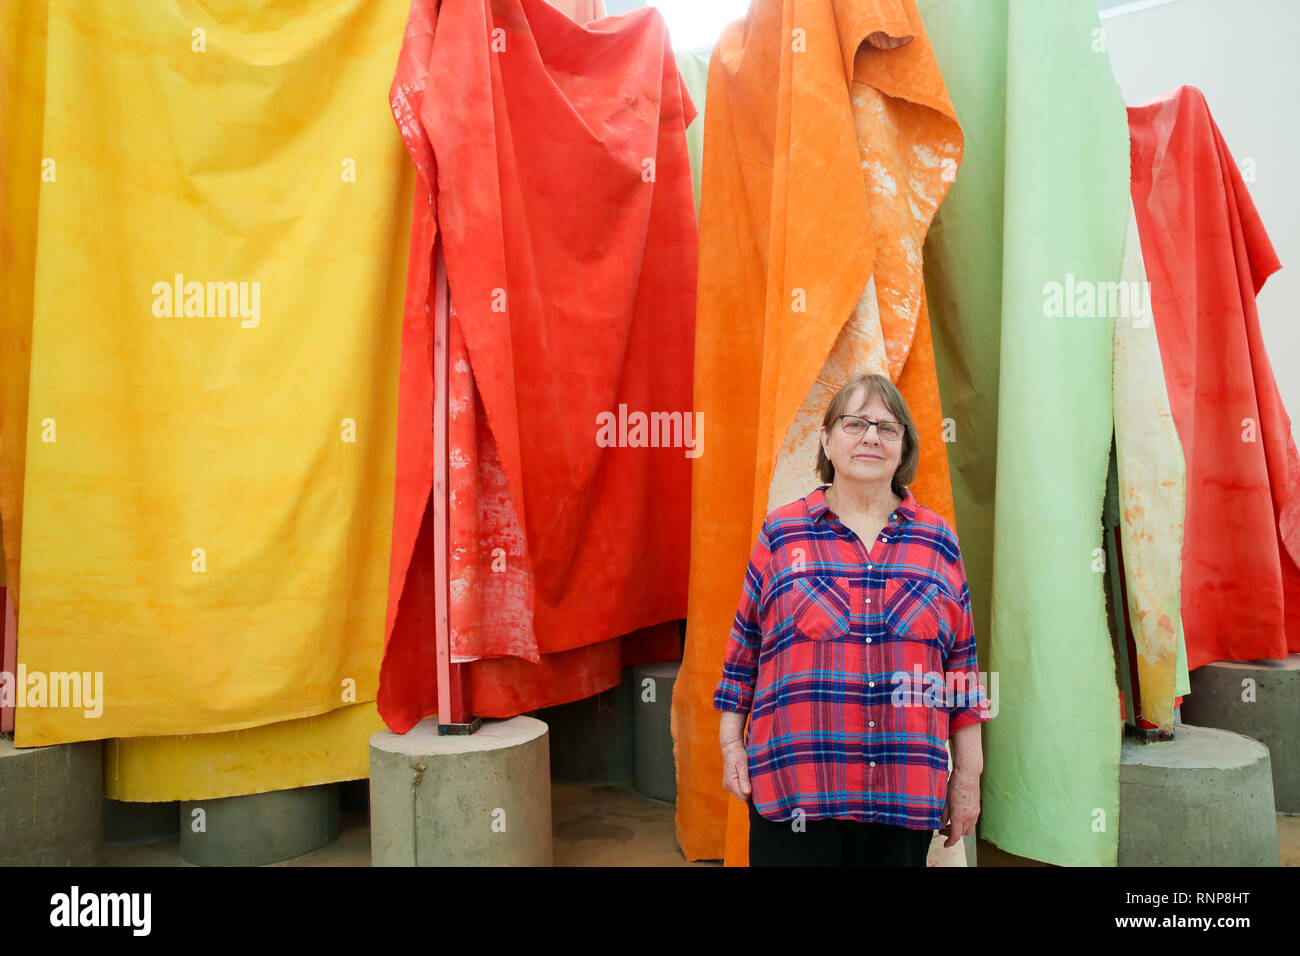 Royal Academy of Arts. London, UK 20 Feb 2019 - Phyllida Barlow poses in front of her artwork at Royal Academy of Arts. British artist Phyllida Barlow transforms the Royal Academy's Gabrielle Jungels-Winkler Galleries with an exhibition of entirely new work, entitled cul-de-sac. The exhibition has been conceived as a sequential installation running across all three of the interconnected spaces. The exhibition is open to the public from 23 February until 23 June 2019.  Credit: Dinendra Haria/Alamy Live News Stock Photo